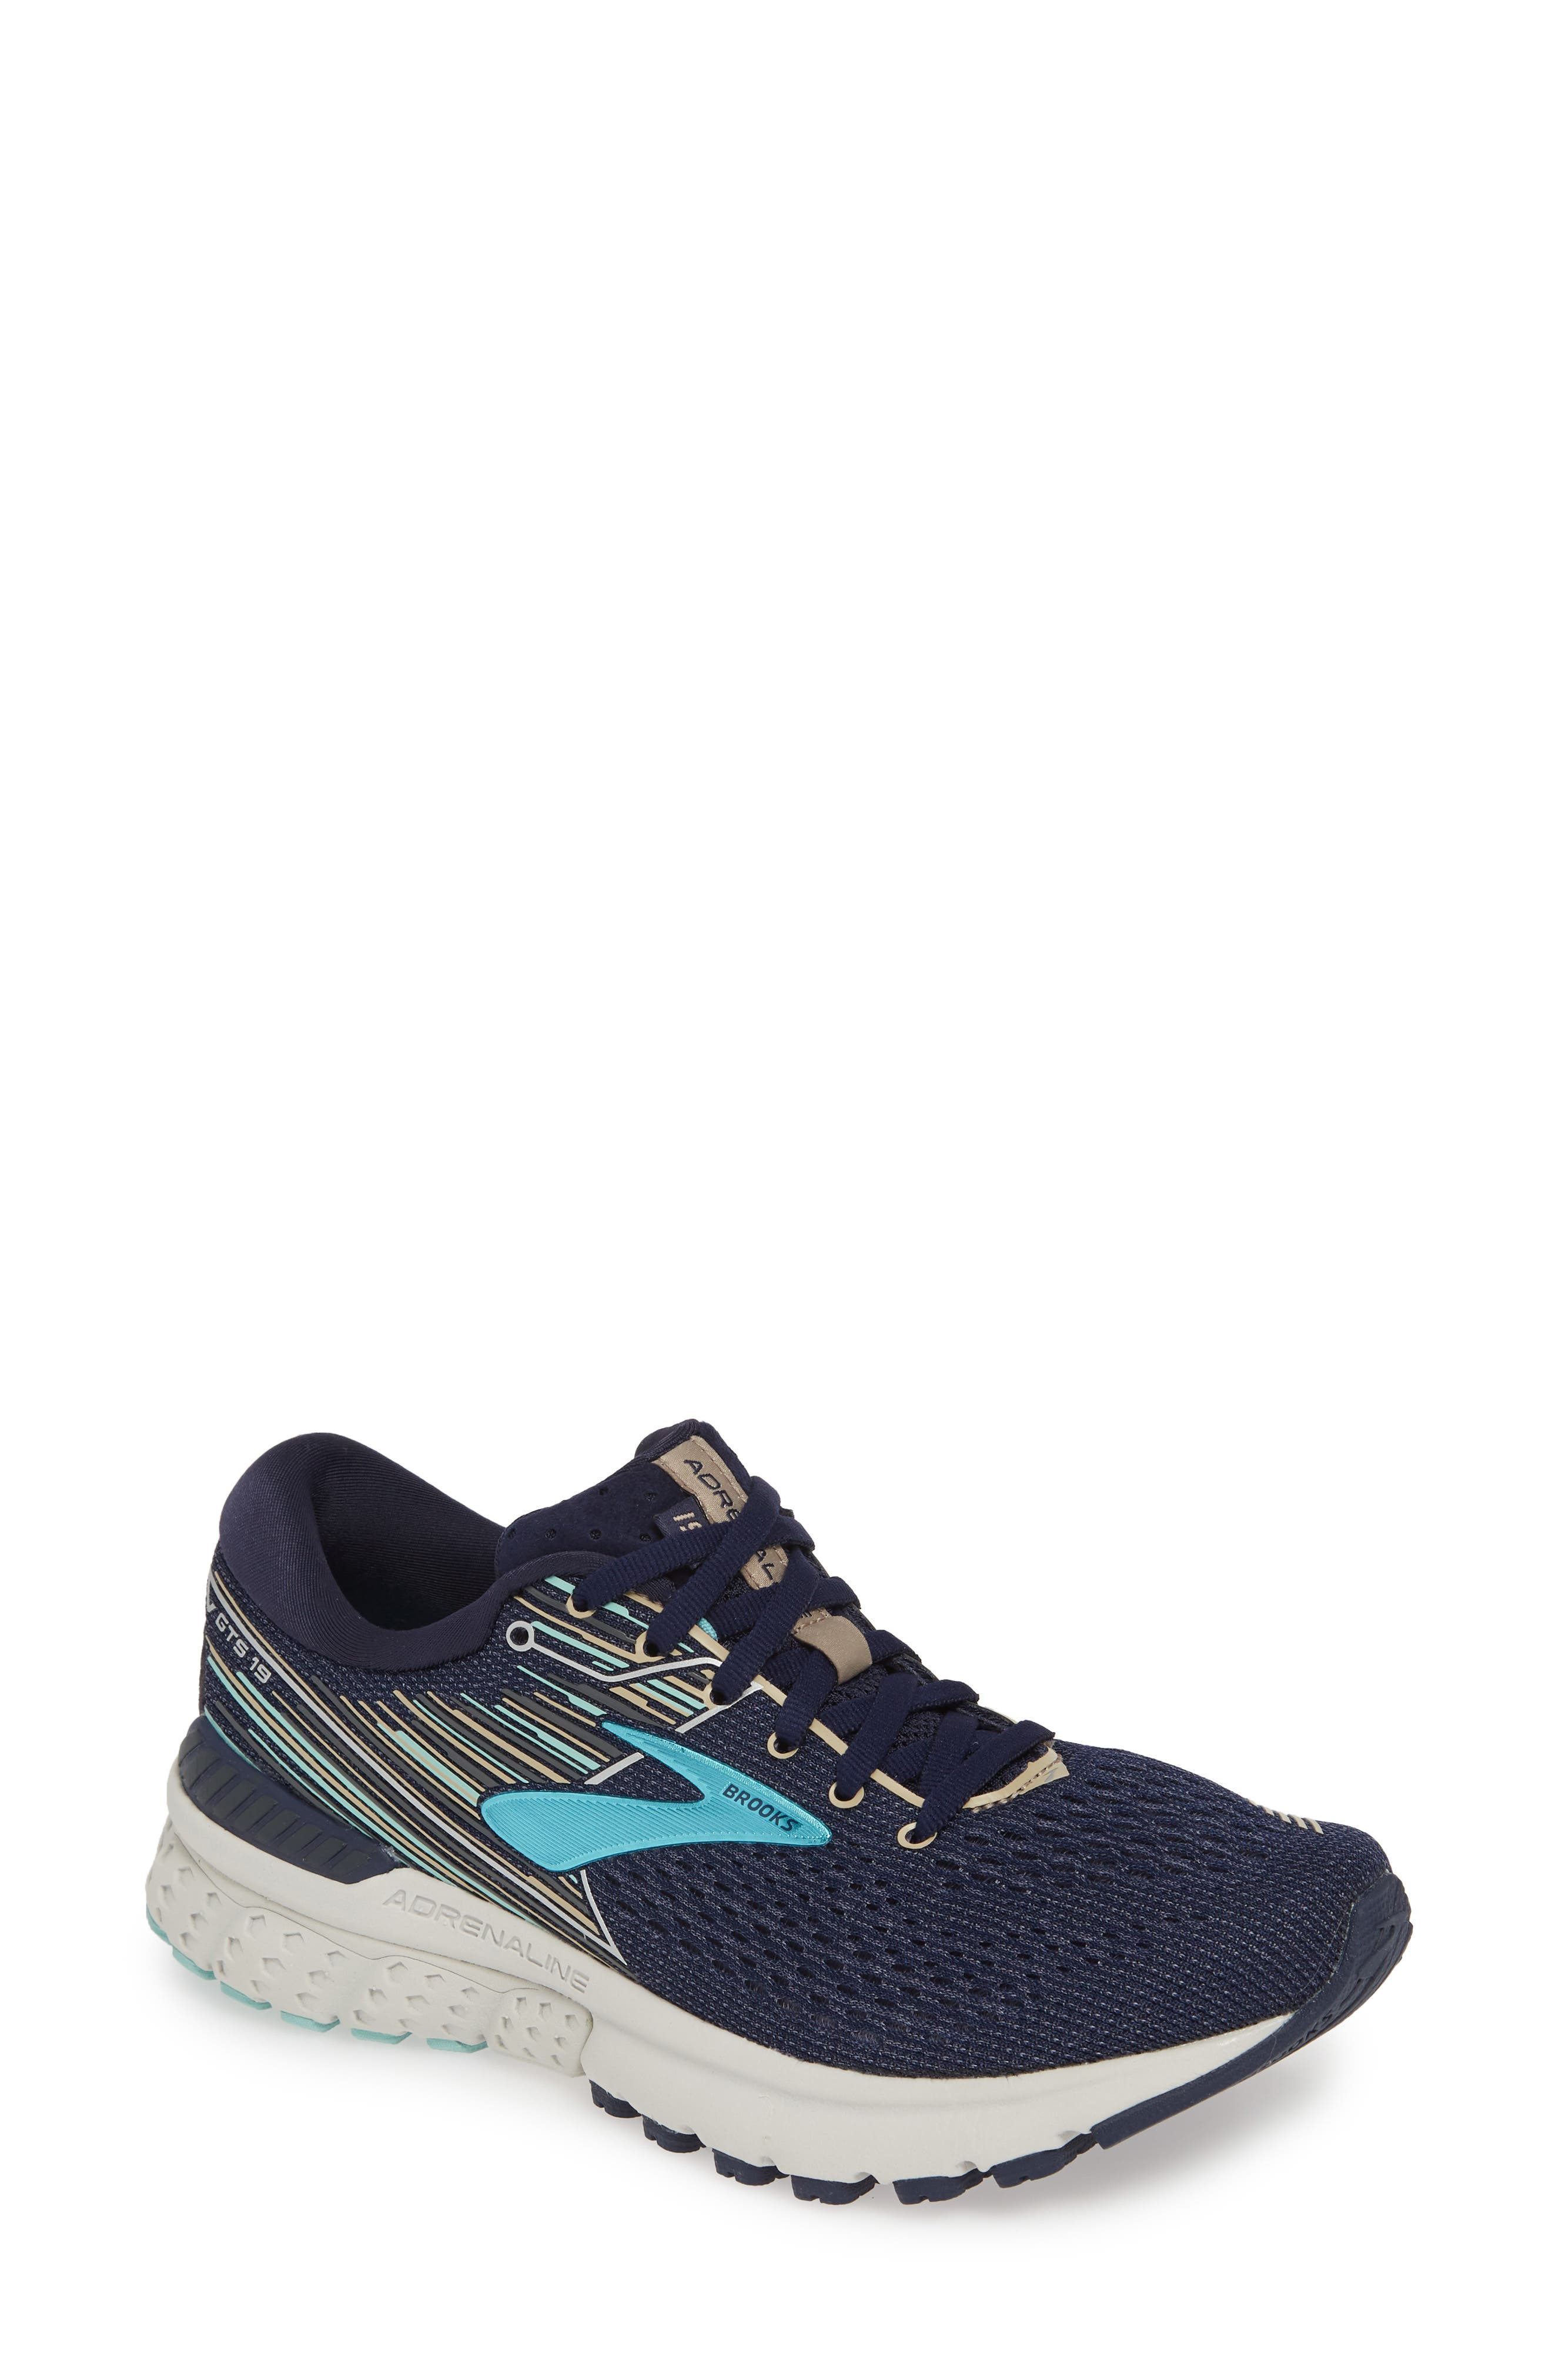 Image of Brooks Adrenaline GTS 19 Running Shoe - Multiple Widths Available